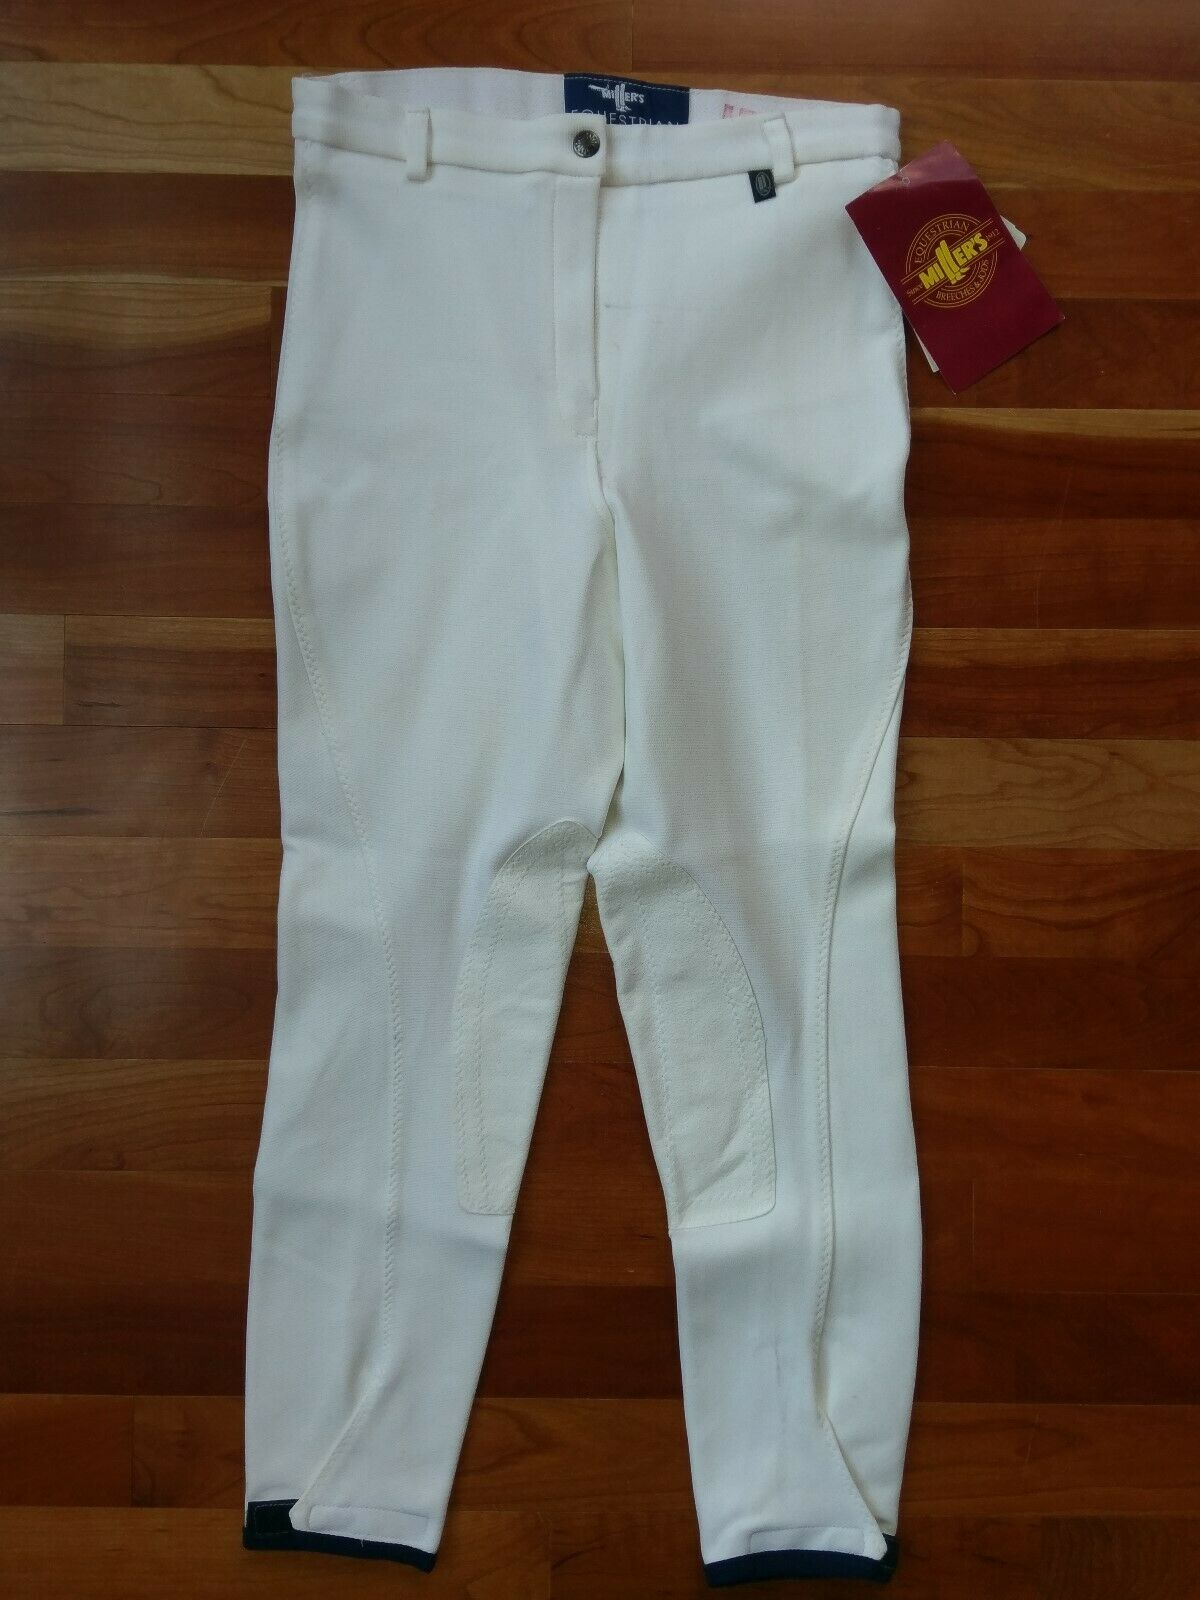 Grand Prix Lexington Breeches 24L Slate Blau Full Seat Equestrian Riding Pants